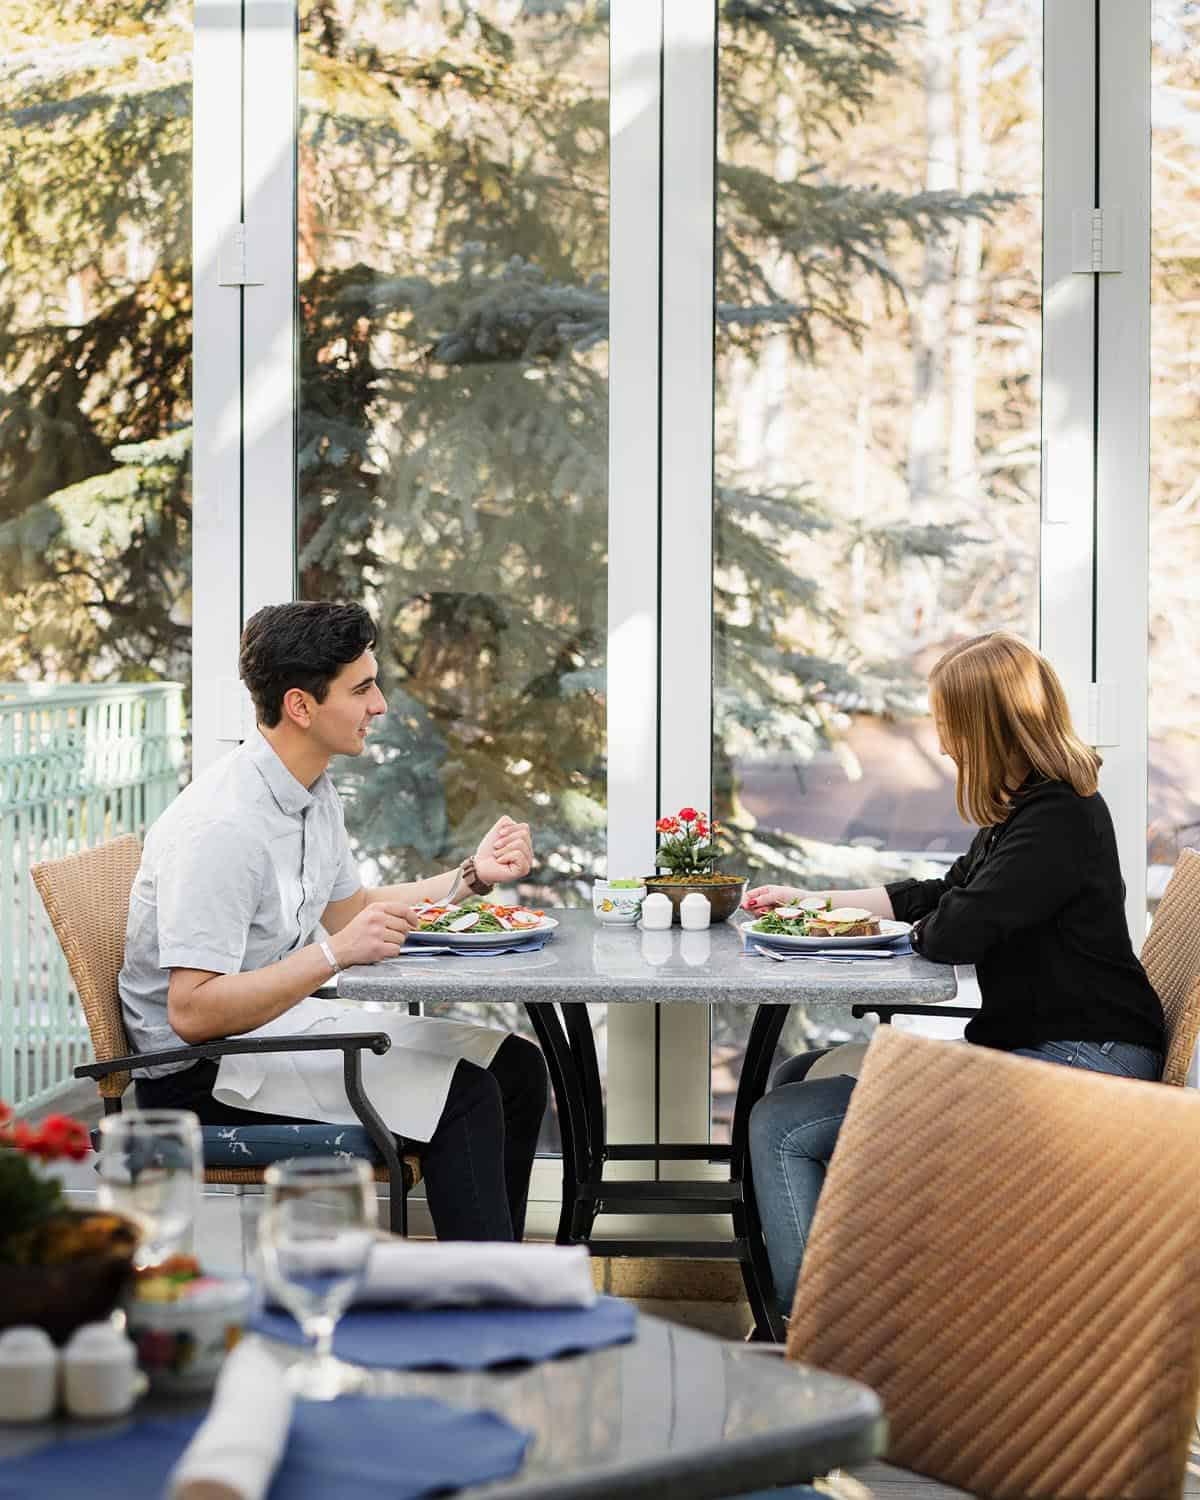 Couple enjoying a meal, sitting at covered outdoor restaurant area with large glass doors with view of trees